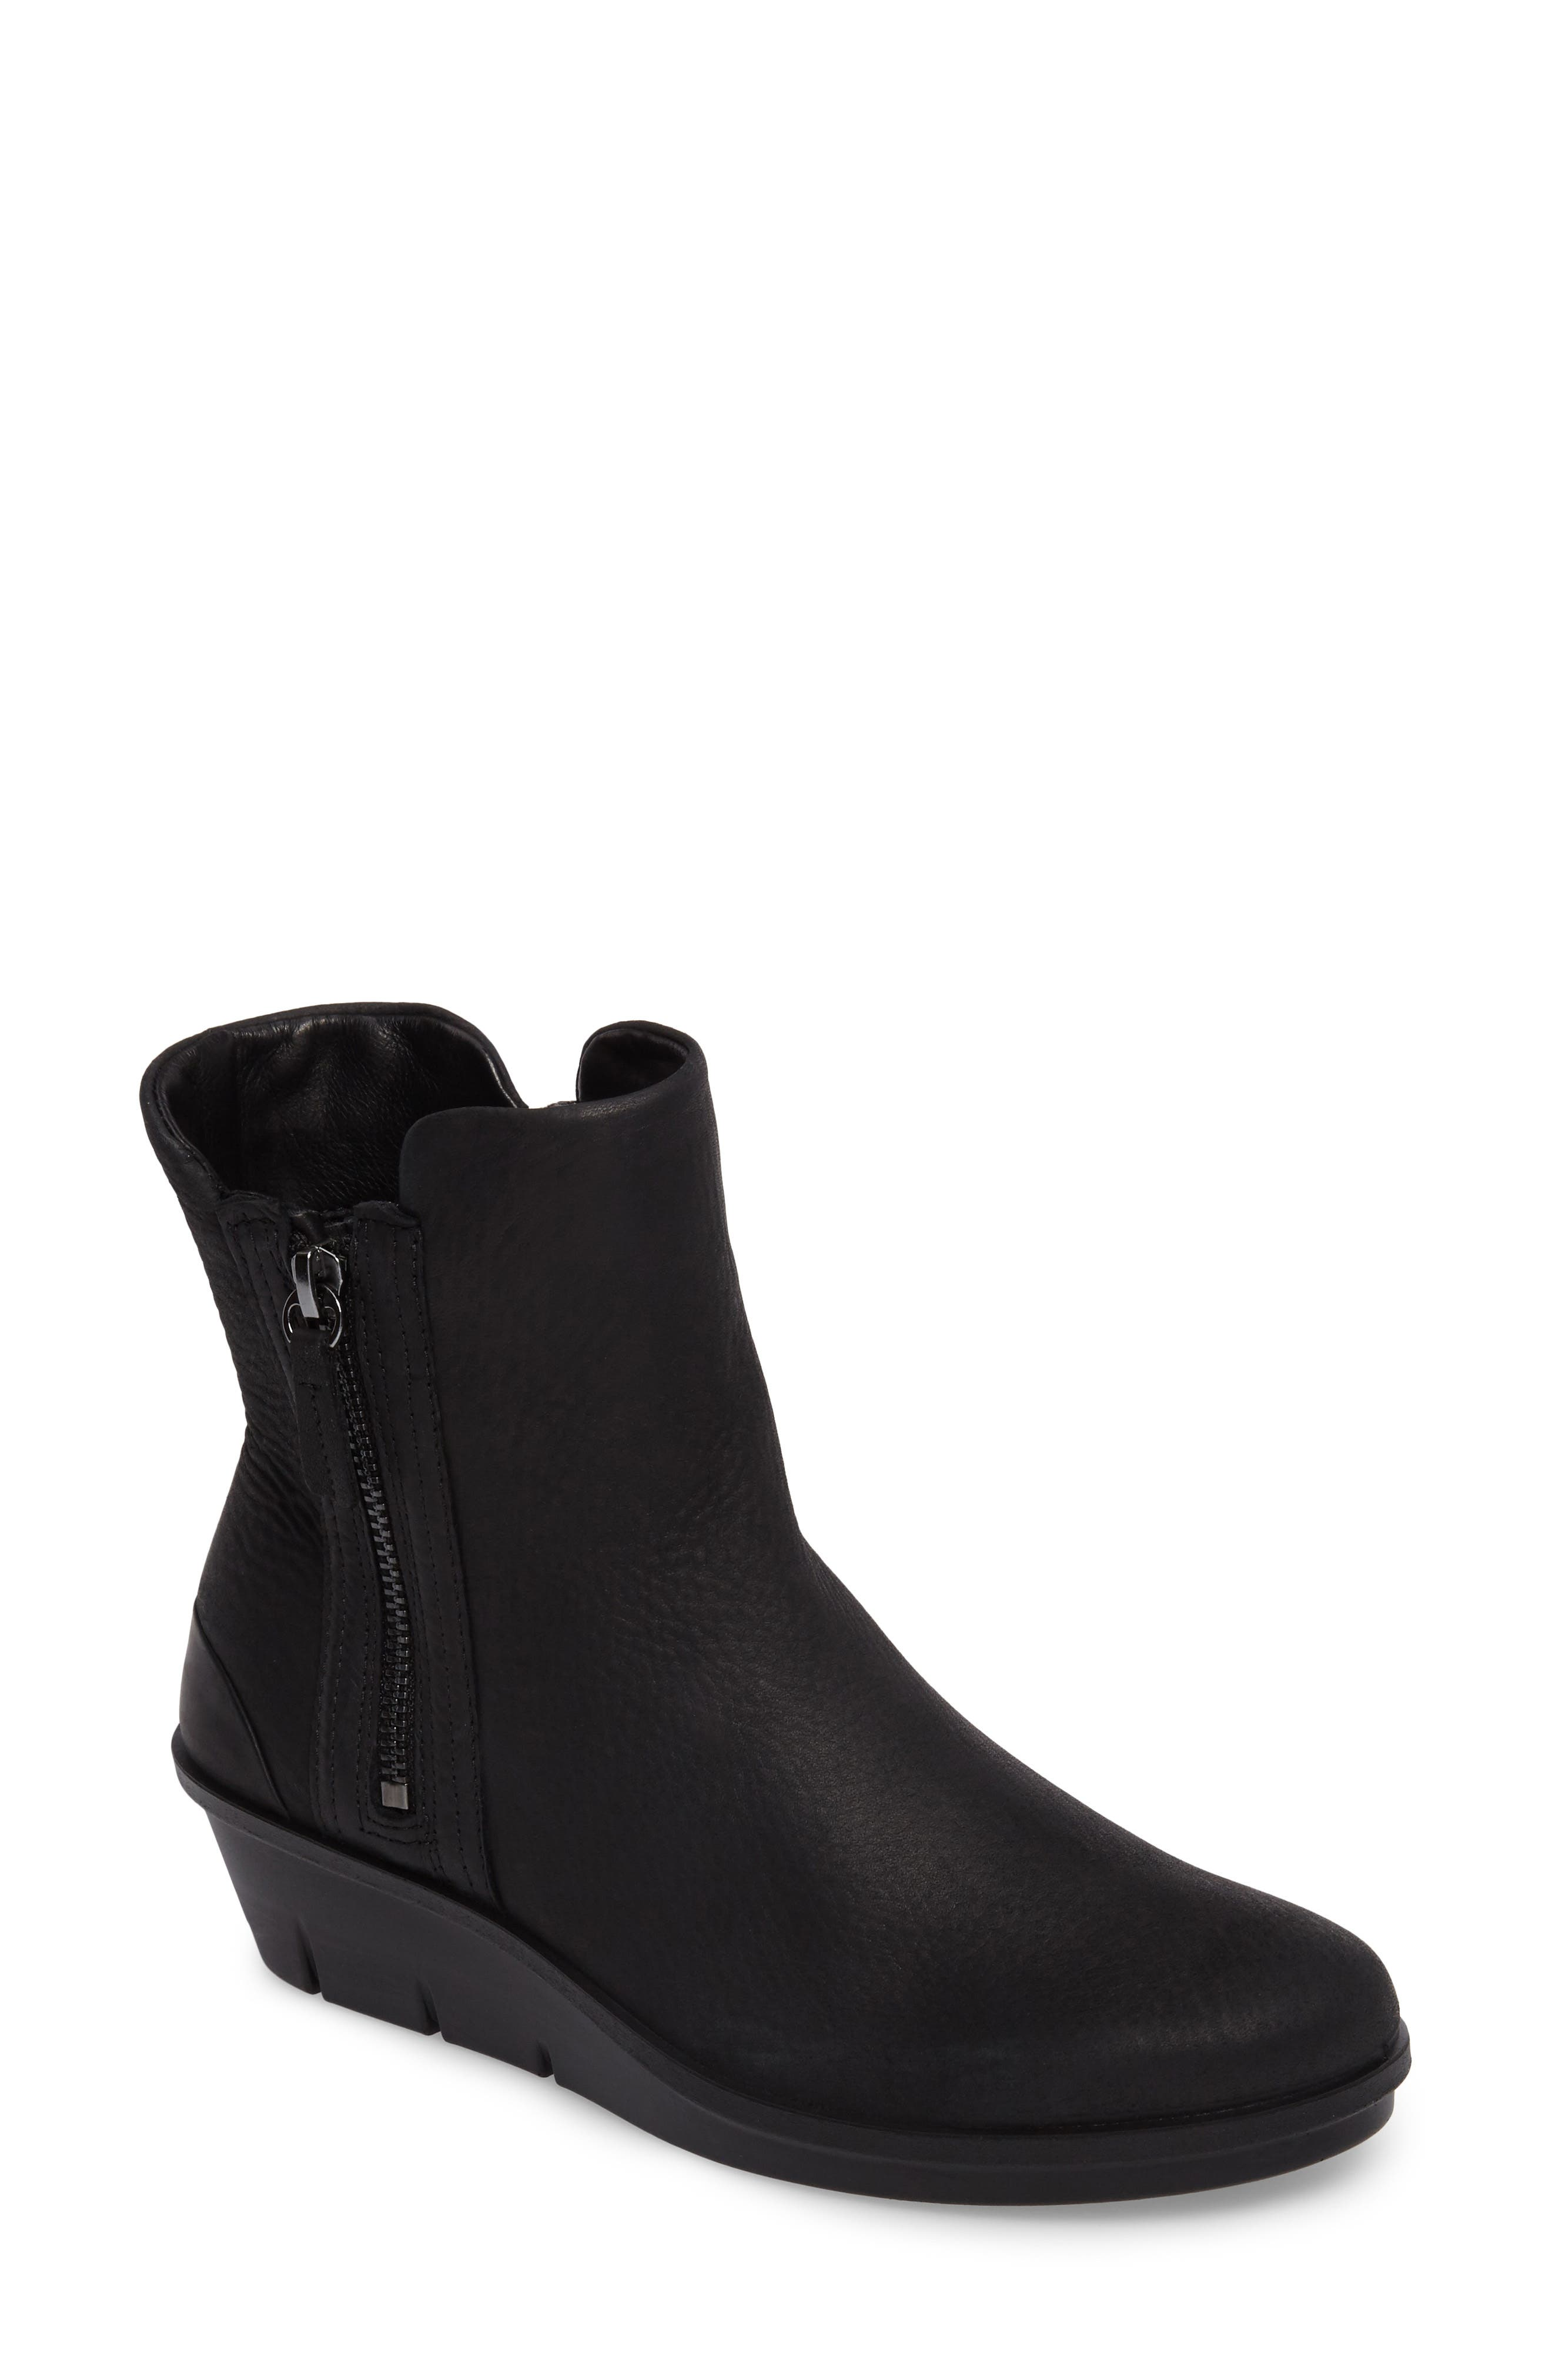 Skyler Notched Wedge Bootie,                         Main,                         color, Black Leather